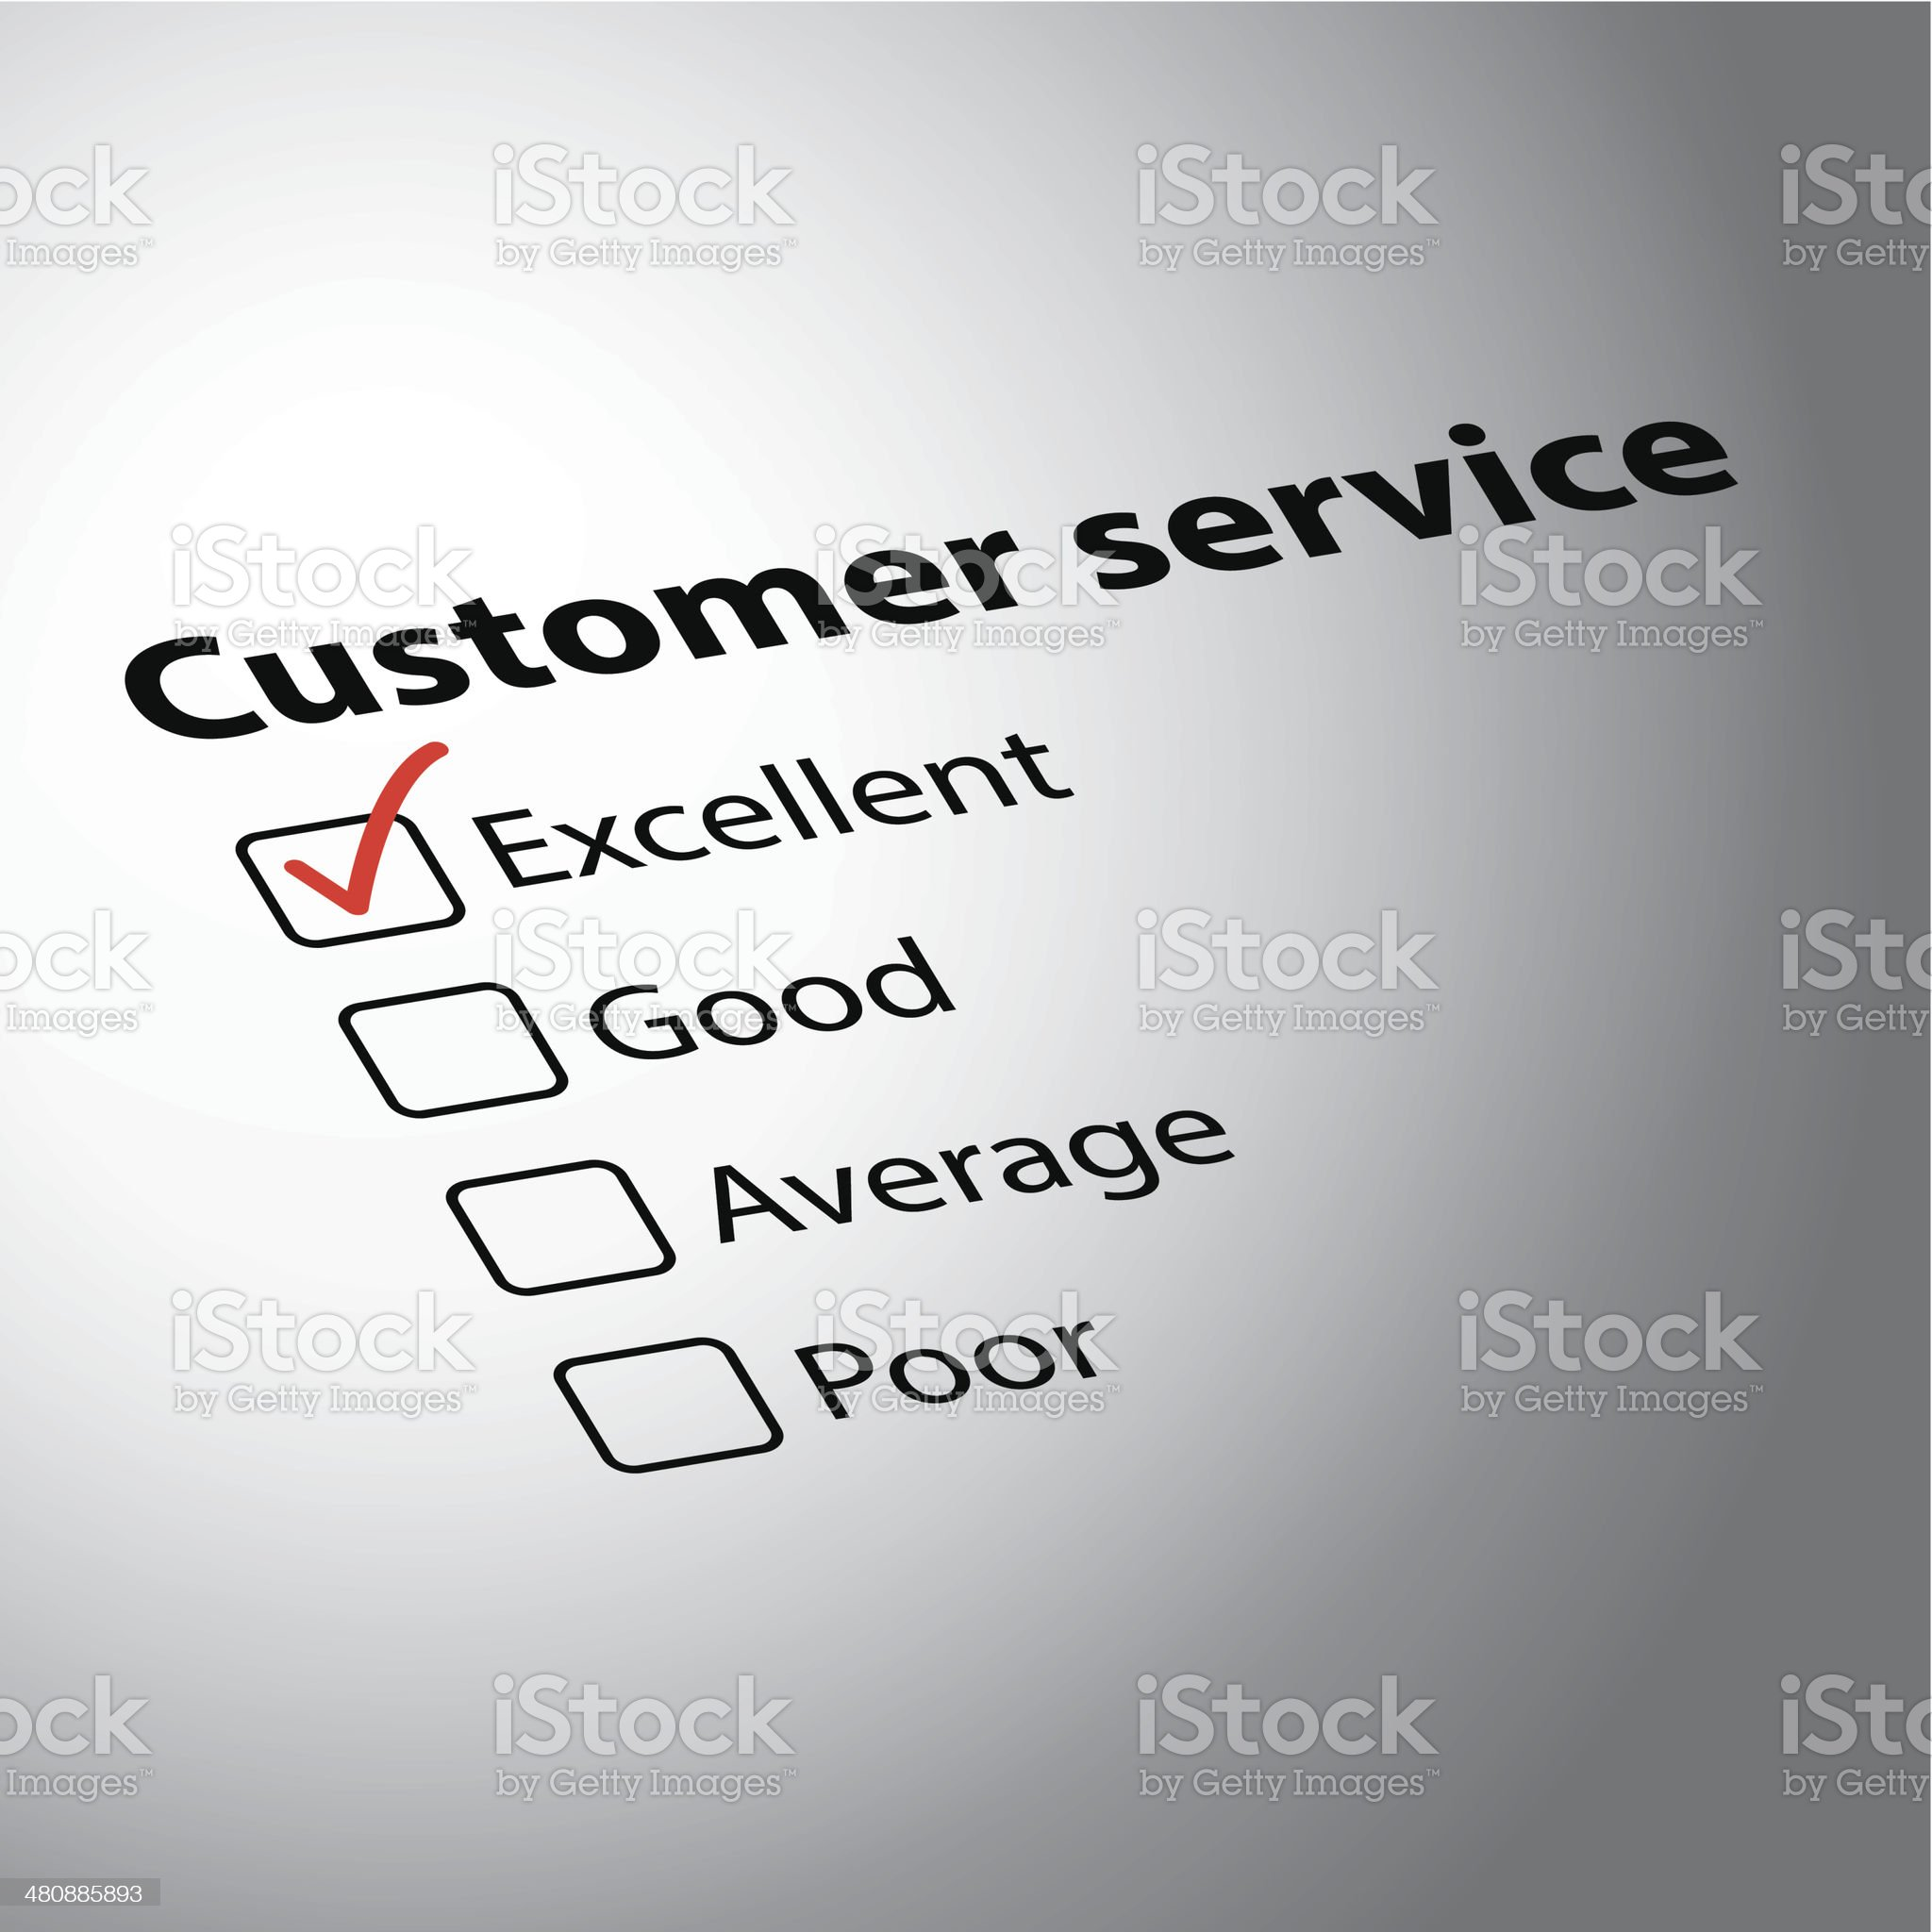 Customer evaluation form royalty-free stock vector art